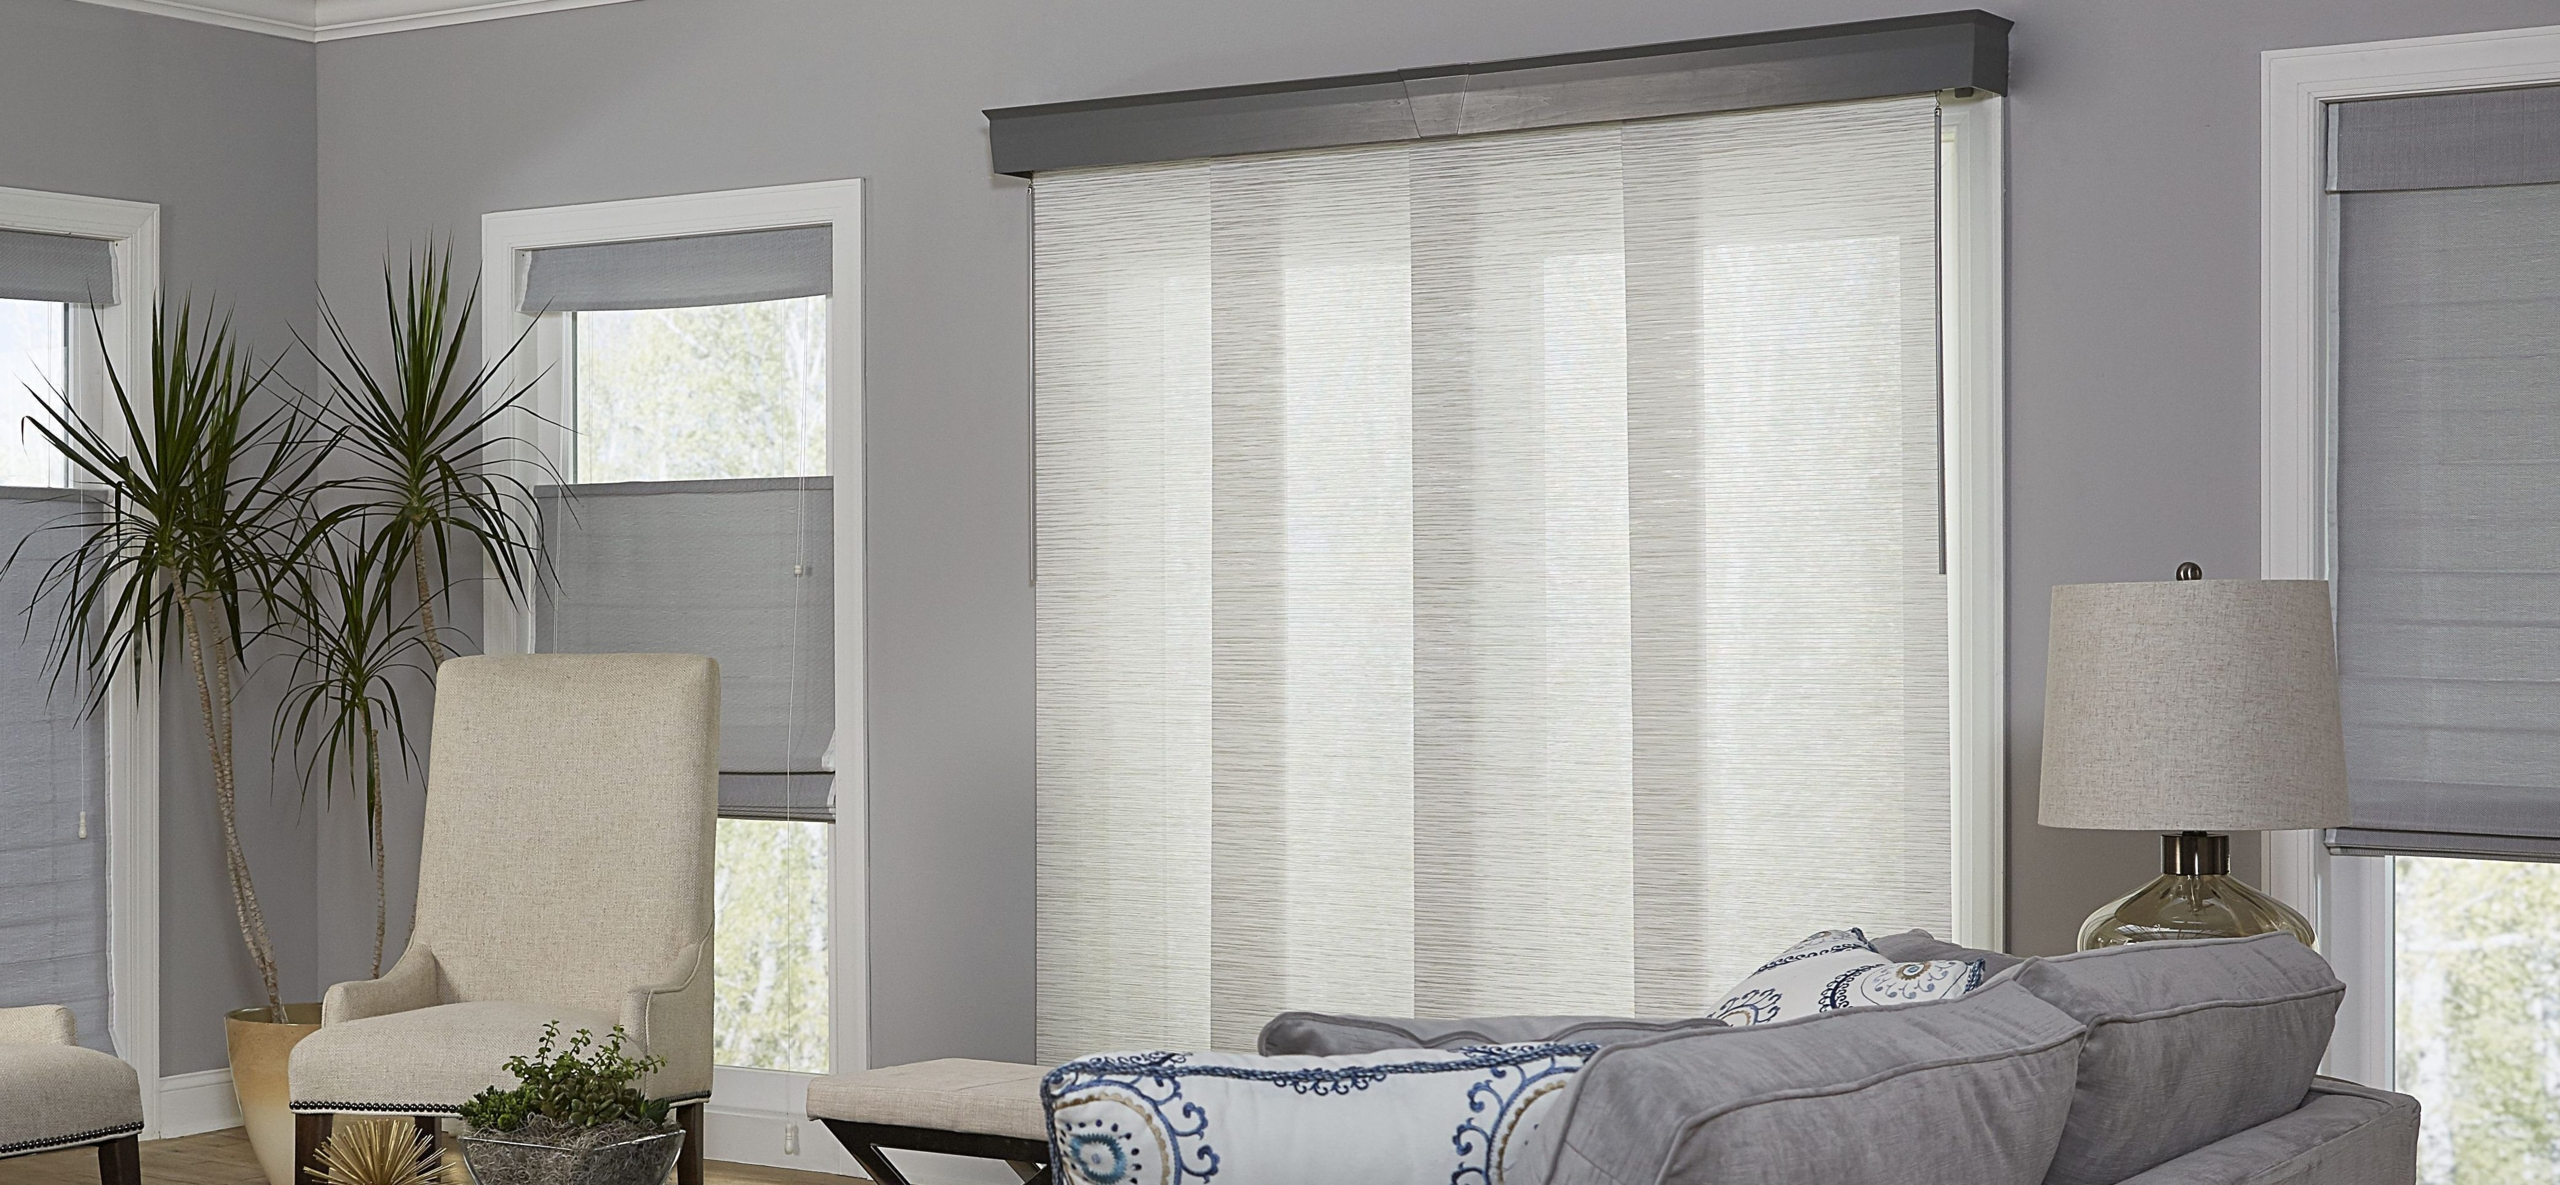 Sliding Glass Door Blinds You Ll Love In 2021 Visualhunt